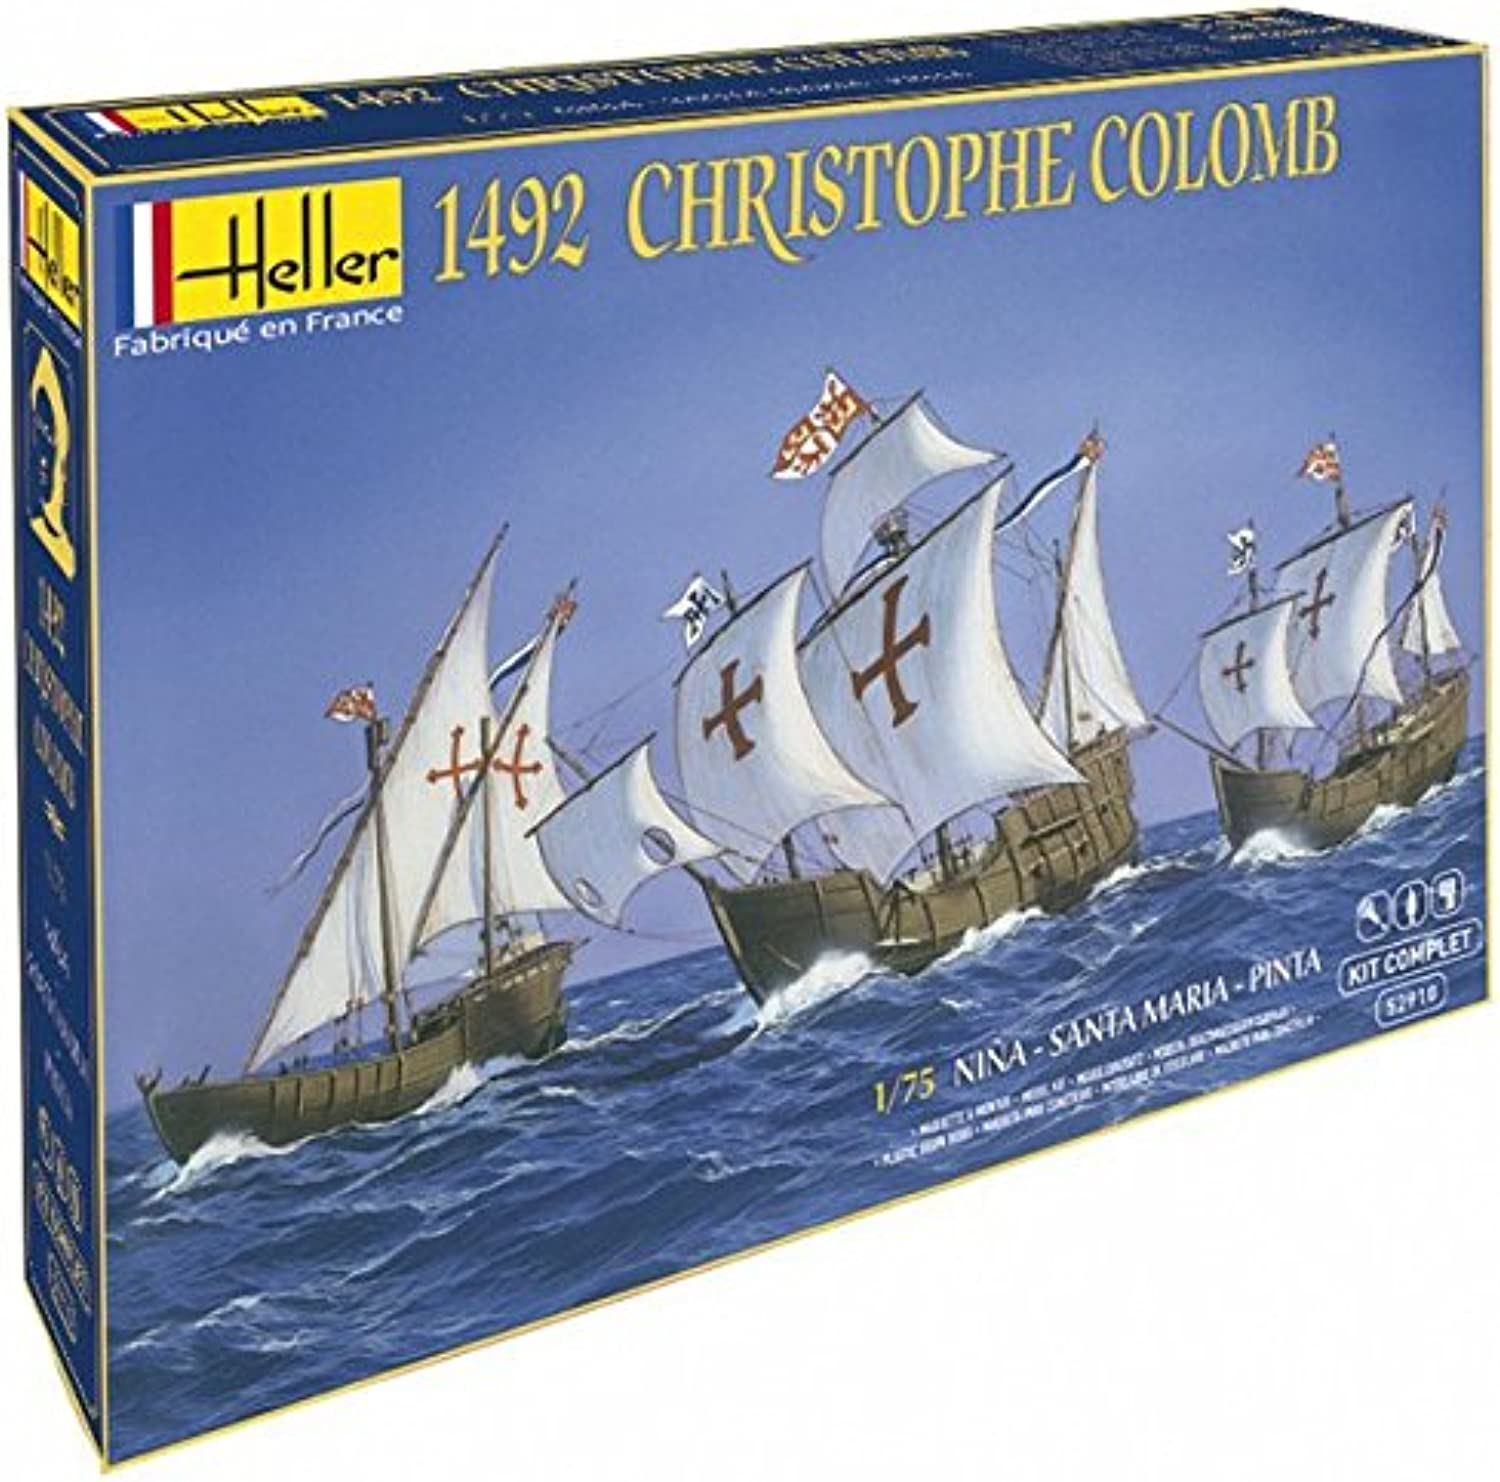 Heller 52910G Christopher Columbus Gift Set, 1 75 Scale